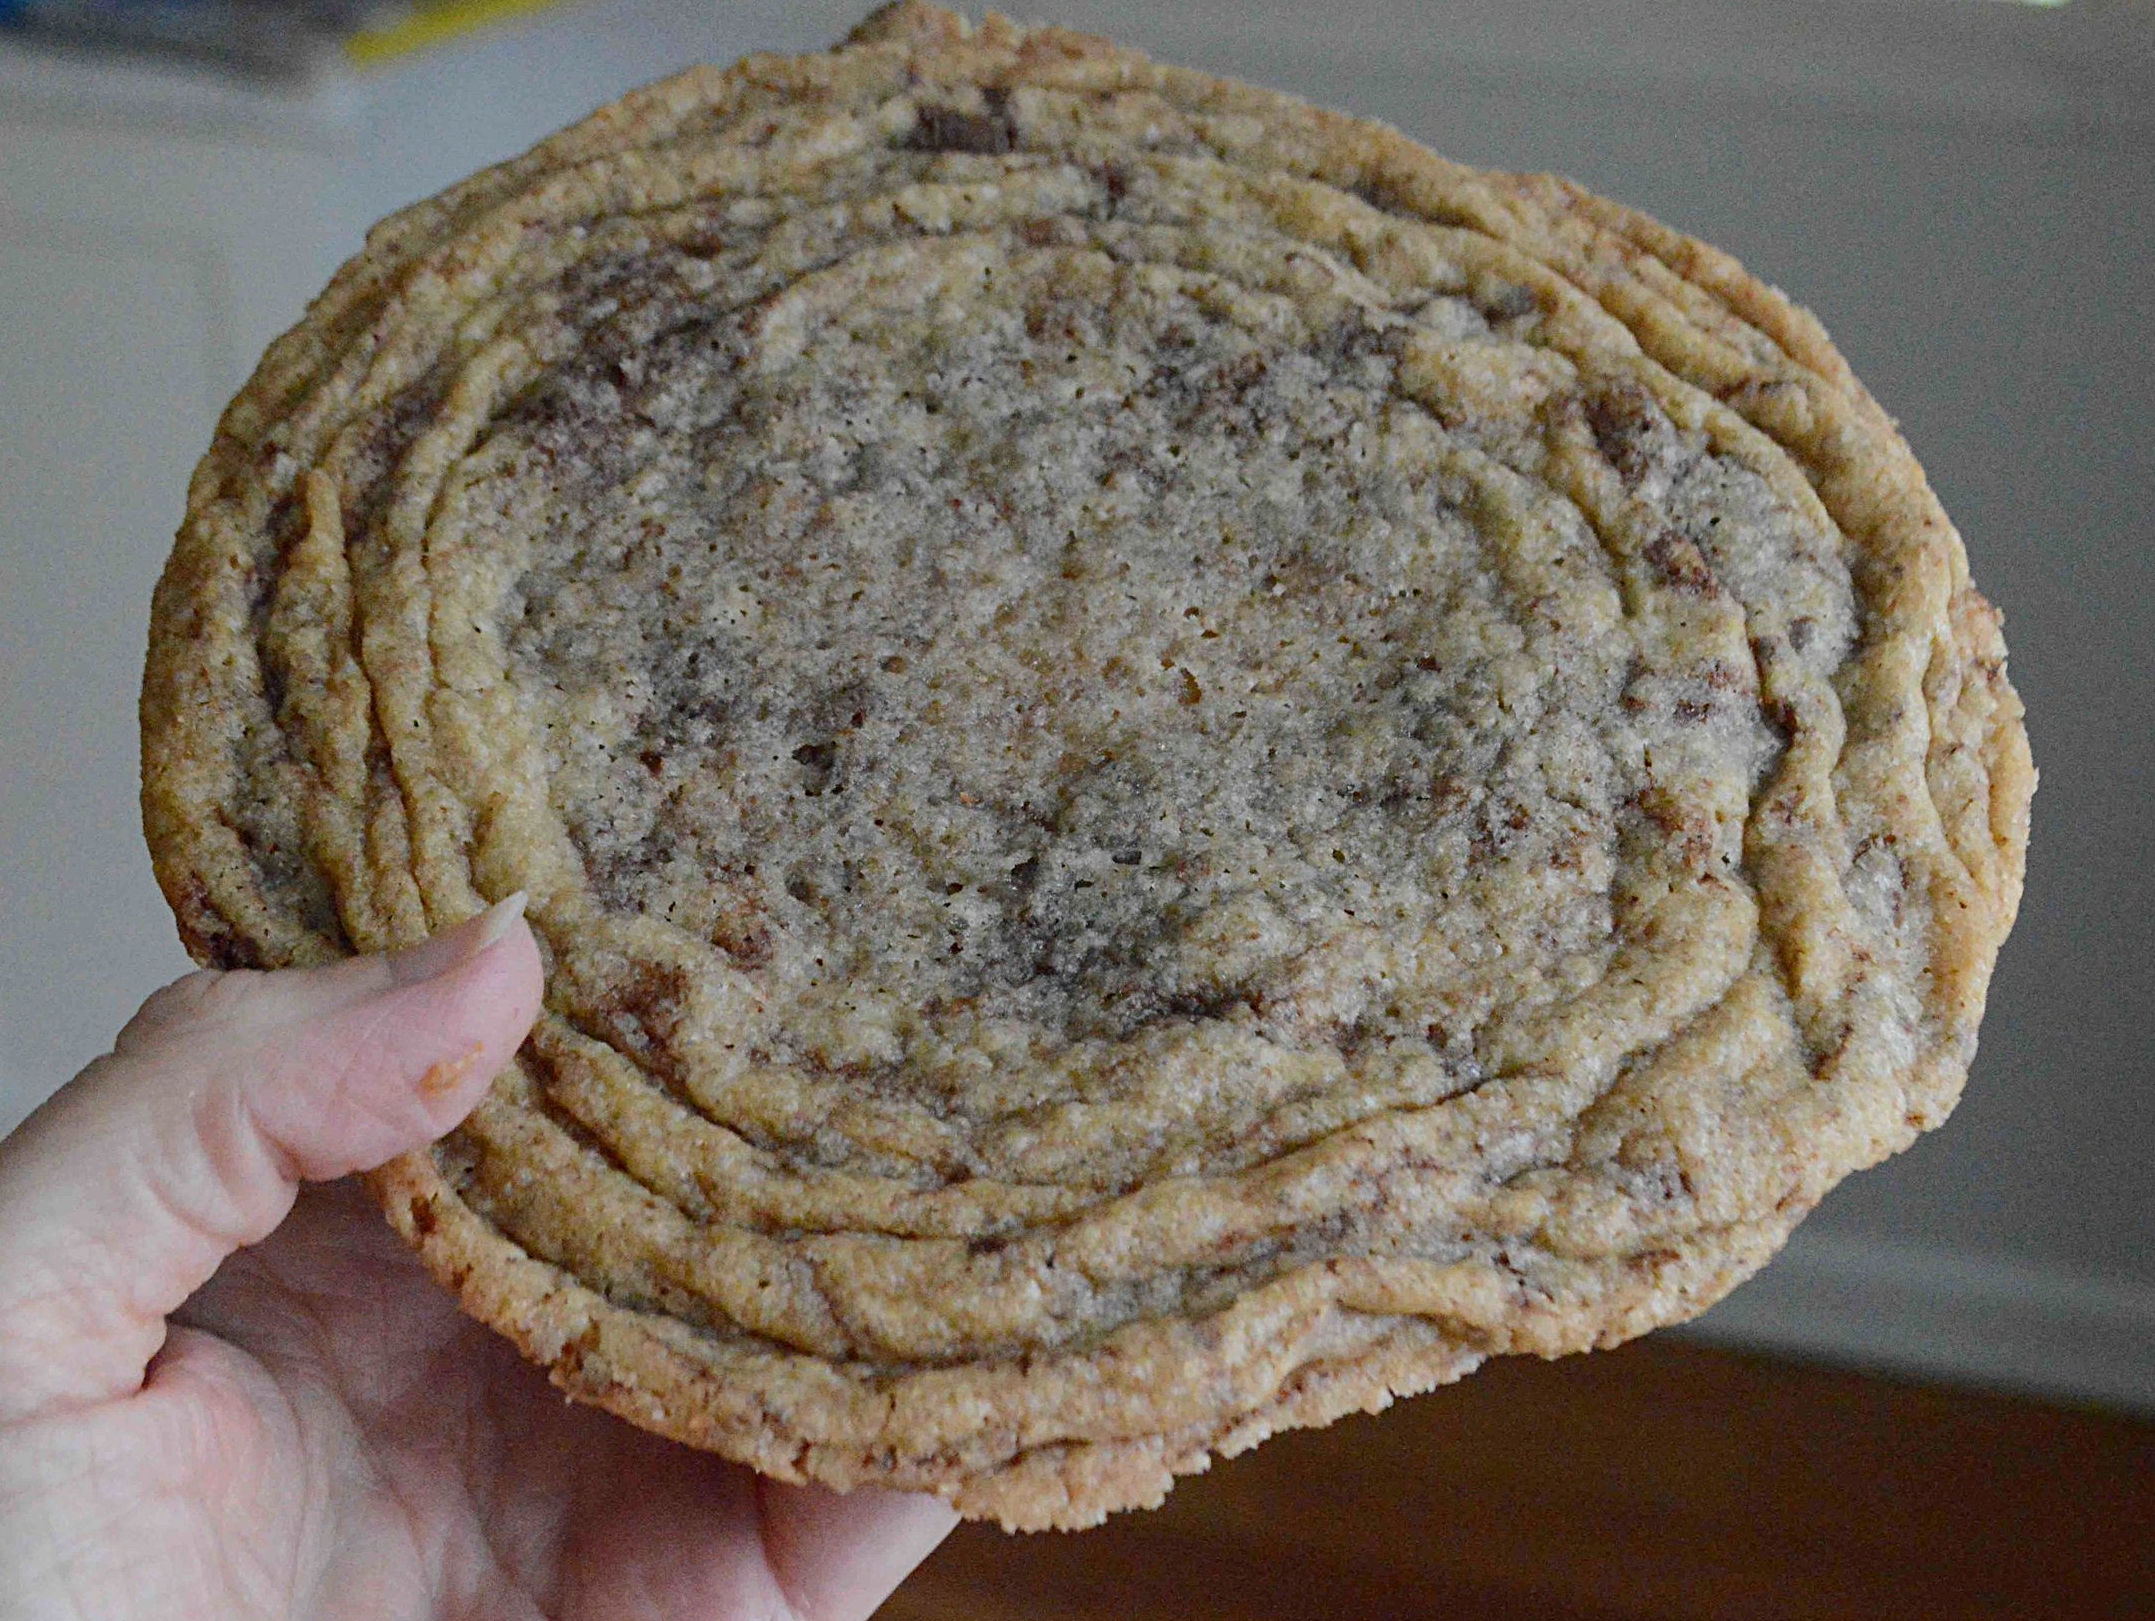 Extremely Enormous and Very Crinkly Chocolate Chip Cookies